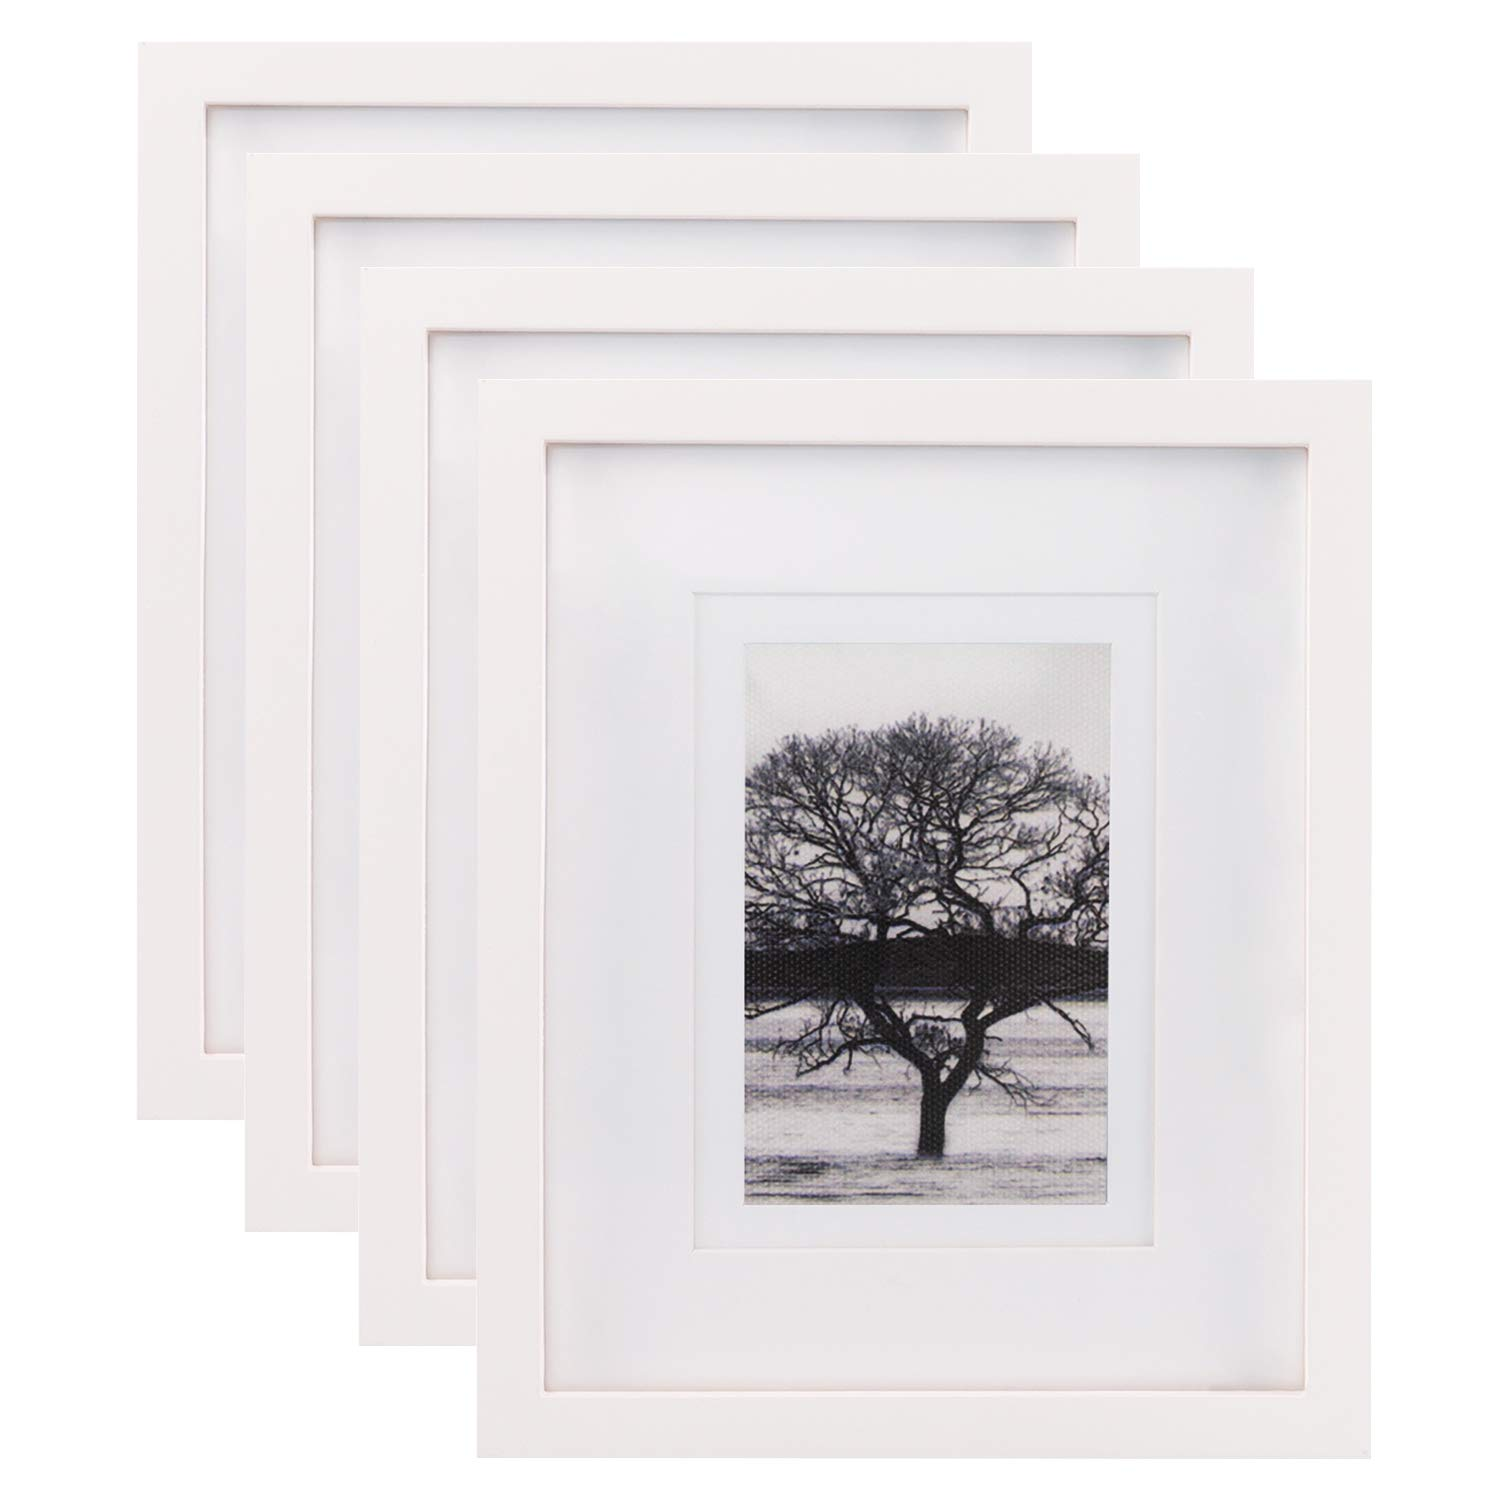 Egofine 8x10 Picture Frames 4 PCS - Made of Solid Wood HD Plexiglass for Table Top Display and Wall mounting photo frame White